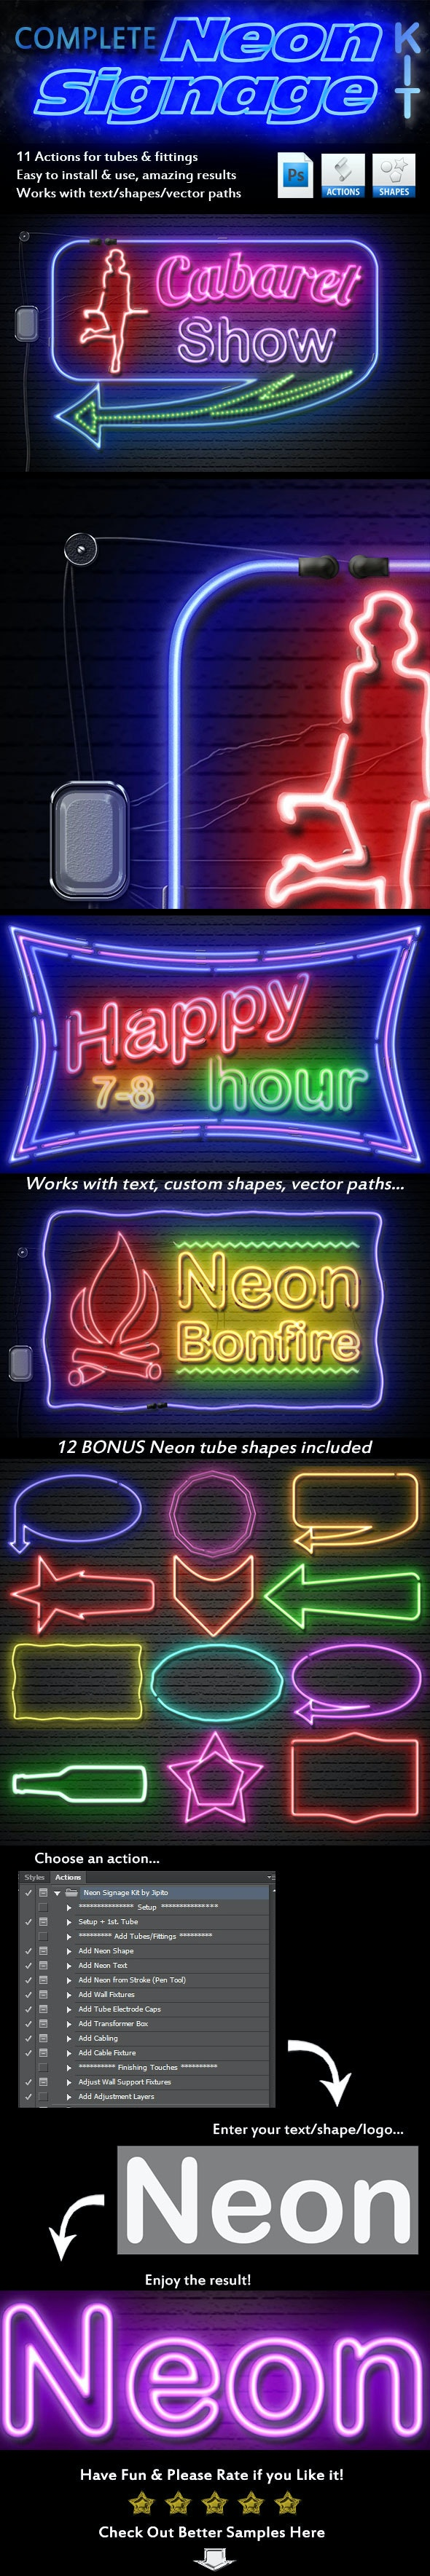 Complete Neon Signage Kit - Utilities Actions